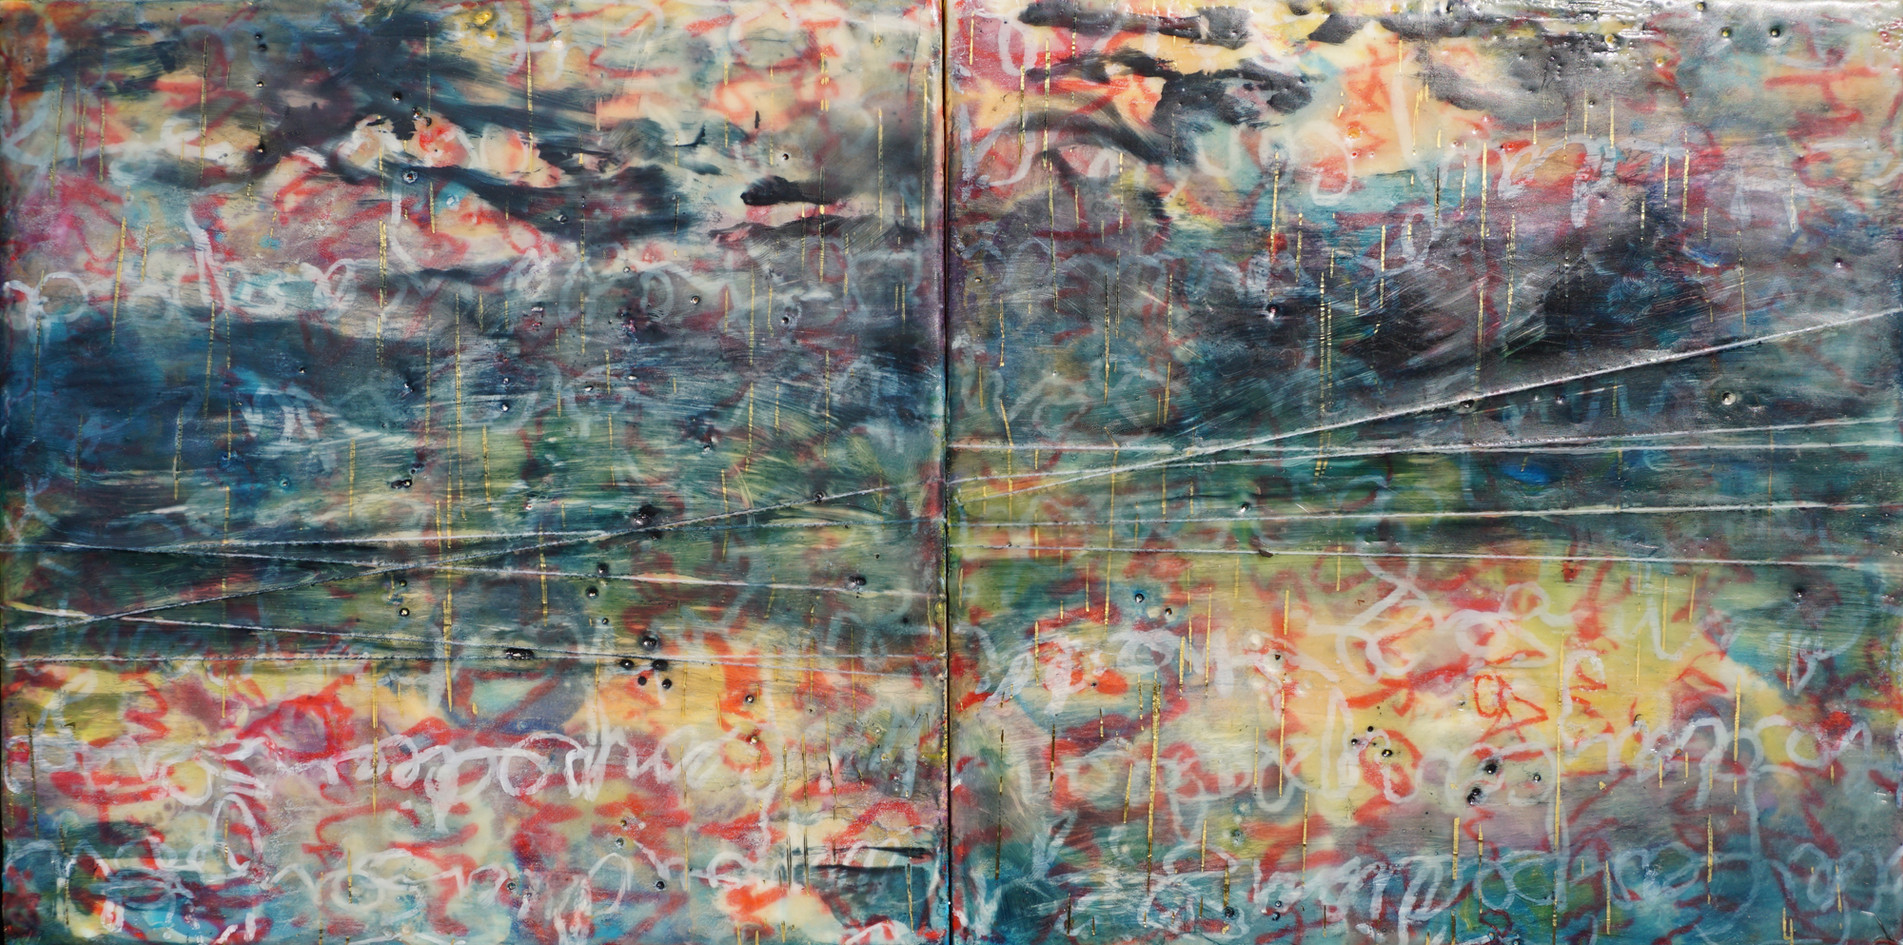 Seize the Day - 11 1/2 x 21 1/2 inches (Diptych)